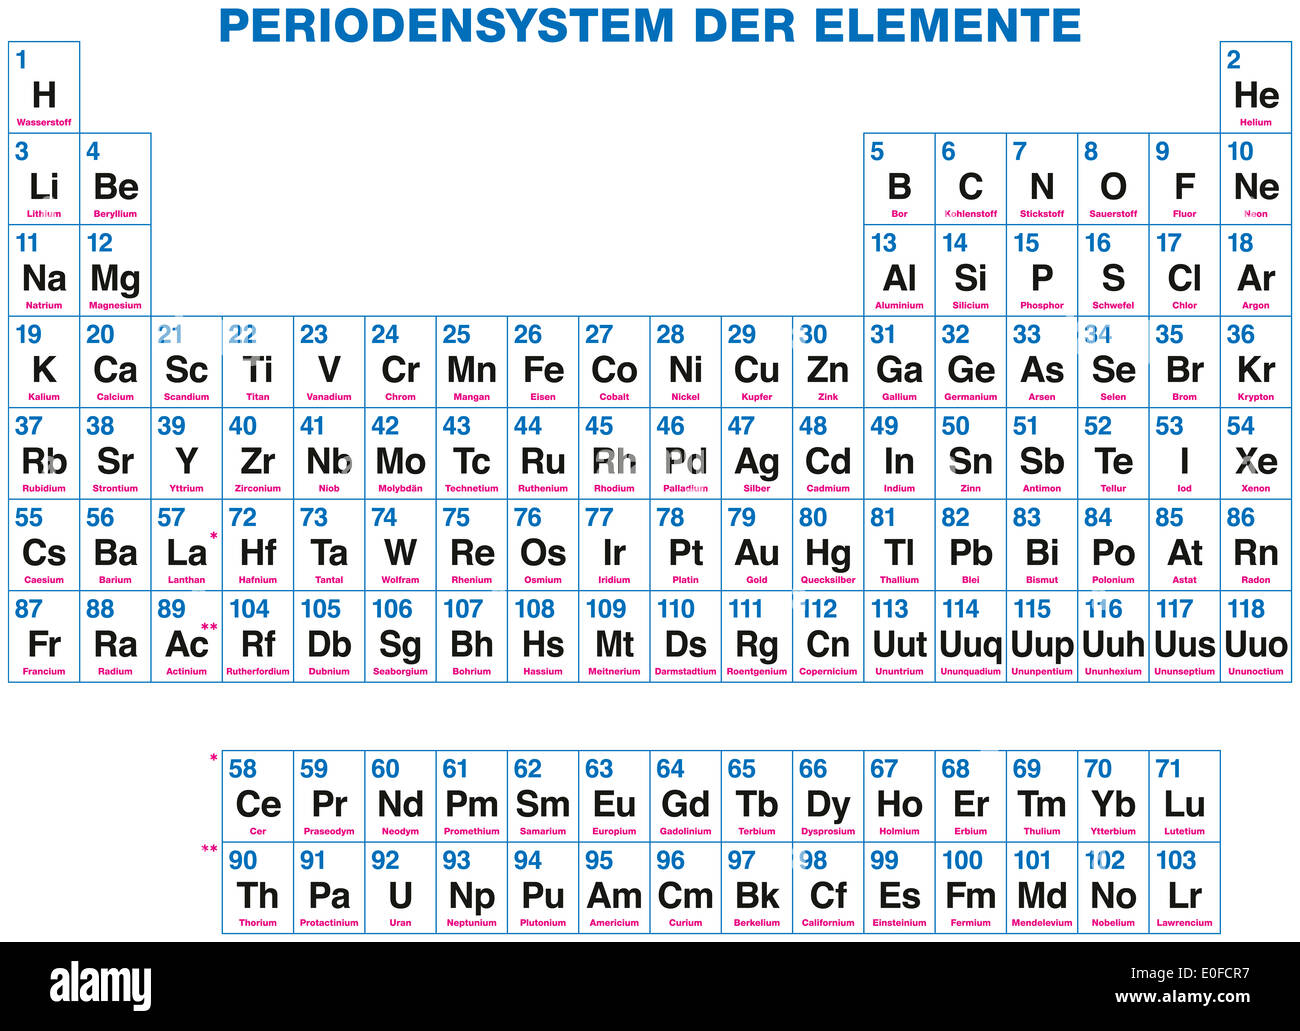 Periodic table of the elements german labeling 118 chemical periodic table of the elements german labeling 118 chemical elements organized on the basis of their atomic numbers urtaz